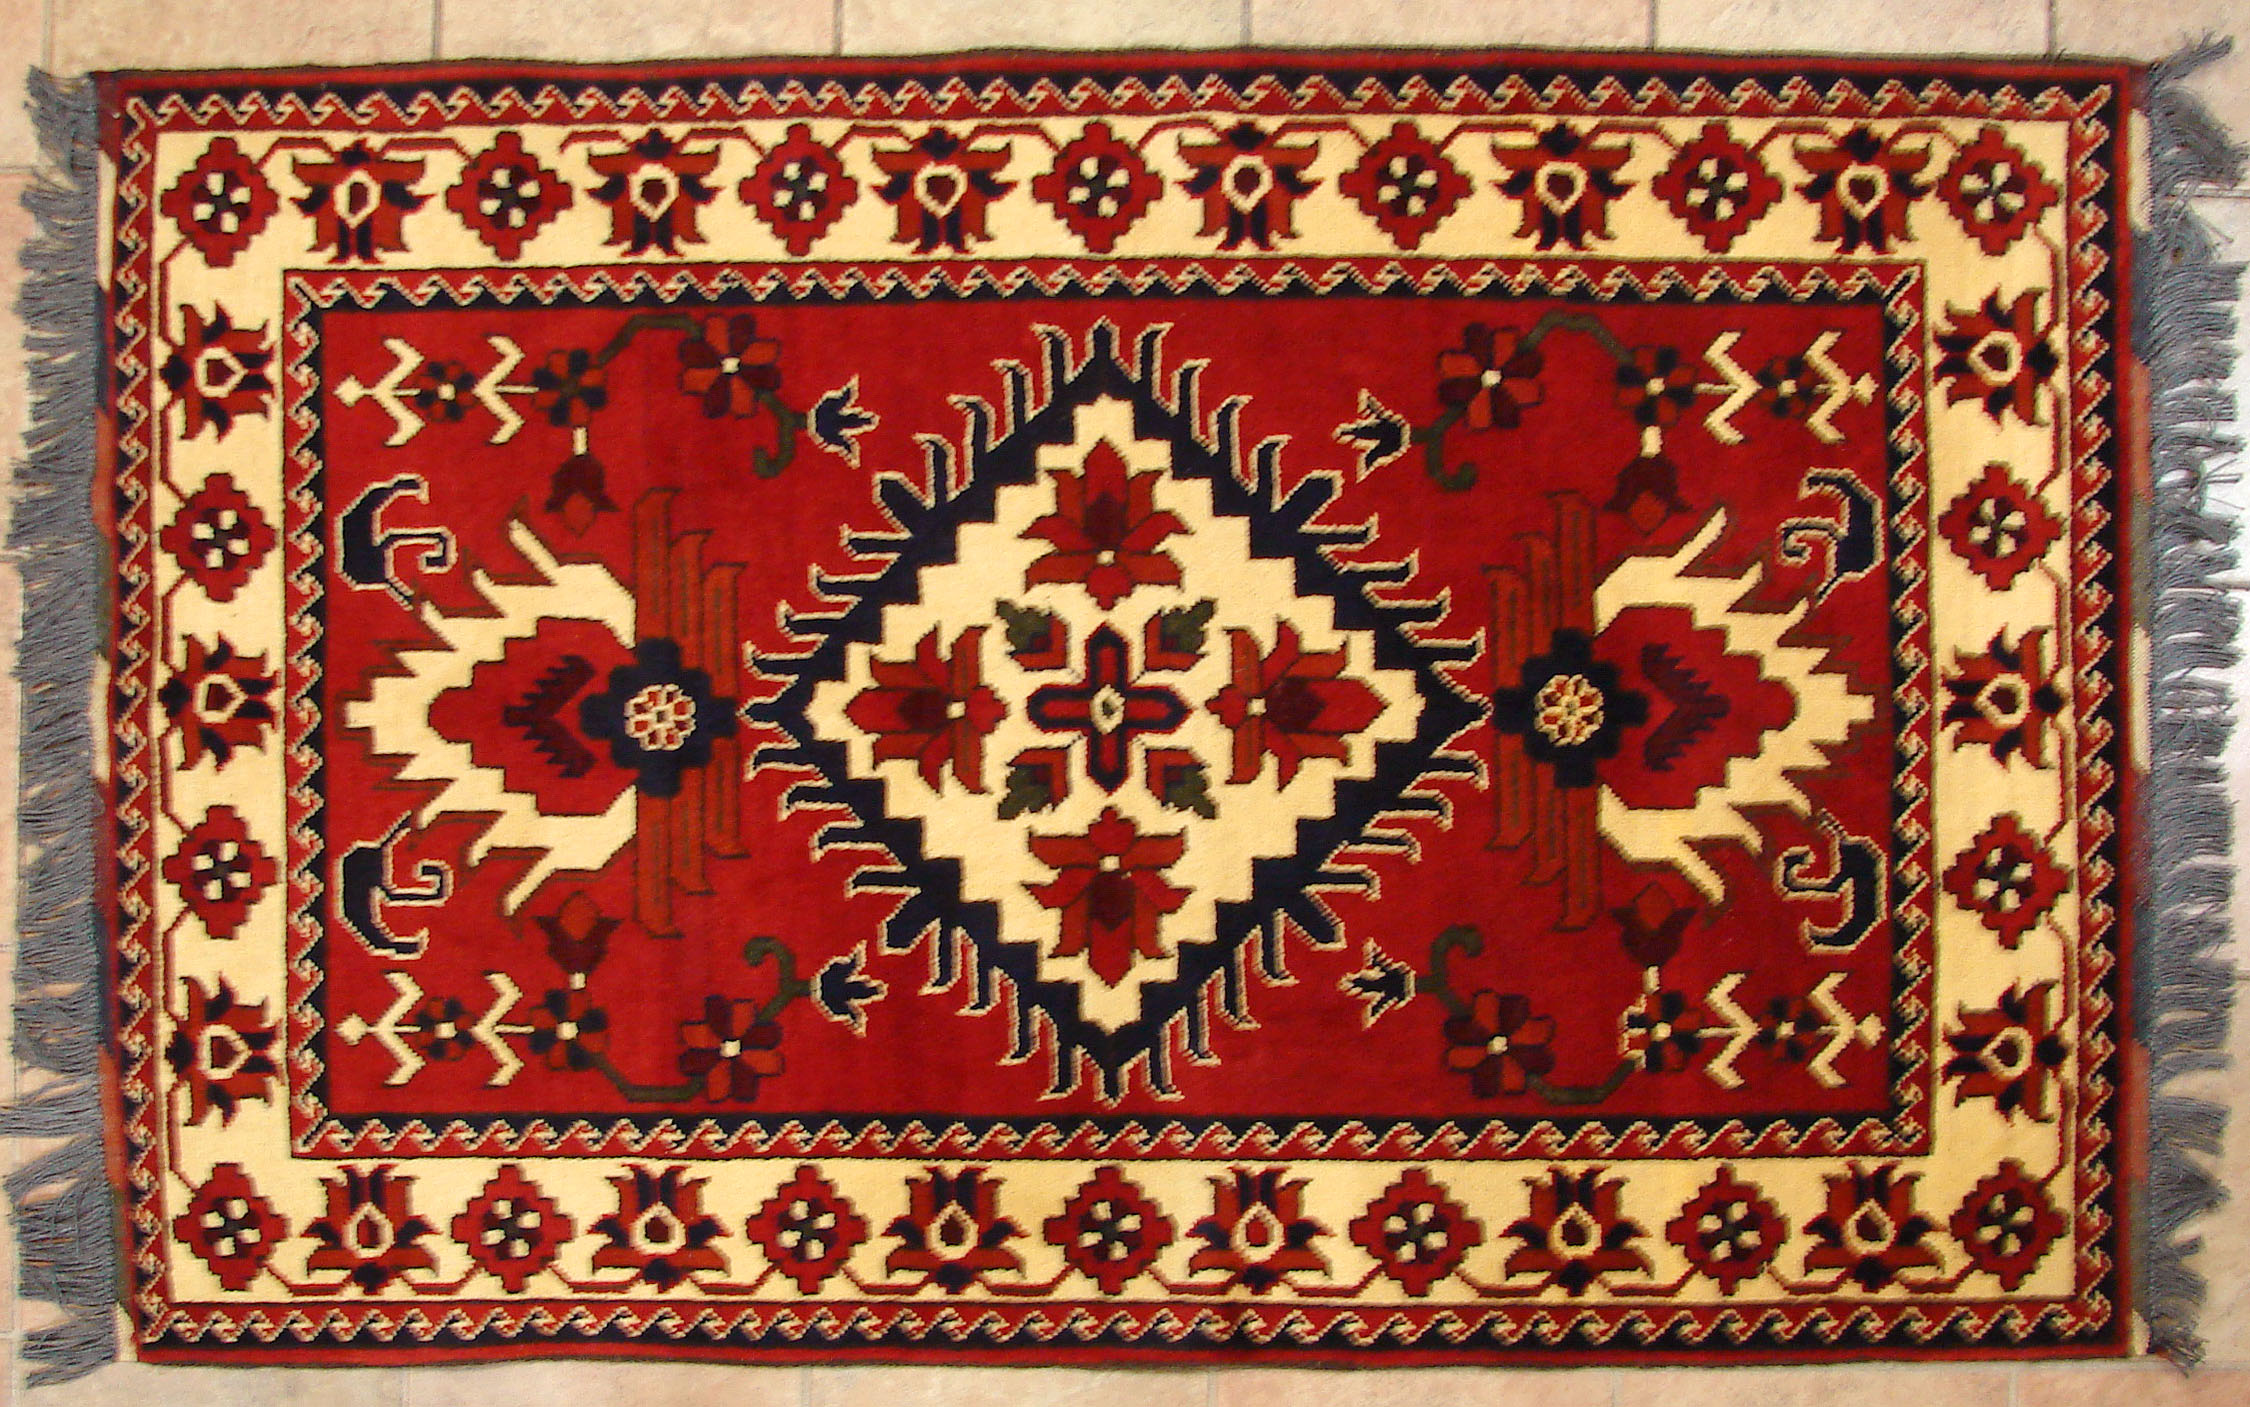 afghan carpet Afghan rugs we specialize in afghan rugs and baluchi rugs,tibetan religious watercolors,thangkas,uzbek caucasian suzanni tapestries tapestry,chinese art deco advertising posters,antique kuchi afghan jewelry,persian rugs,turkish rugs,european rugs,caucasian rugs,tribal rugs,chinese rugs and antique tapestries.